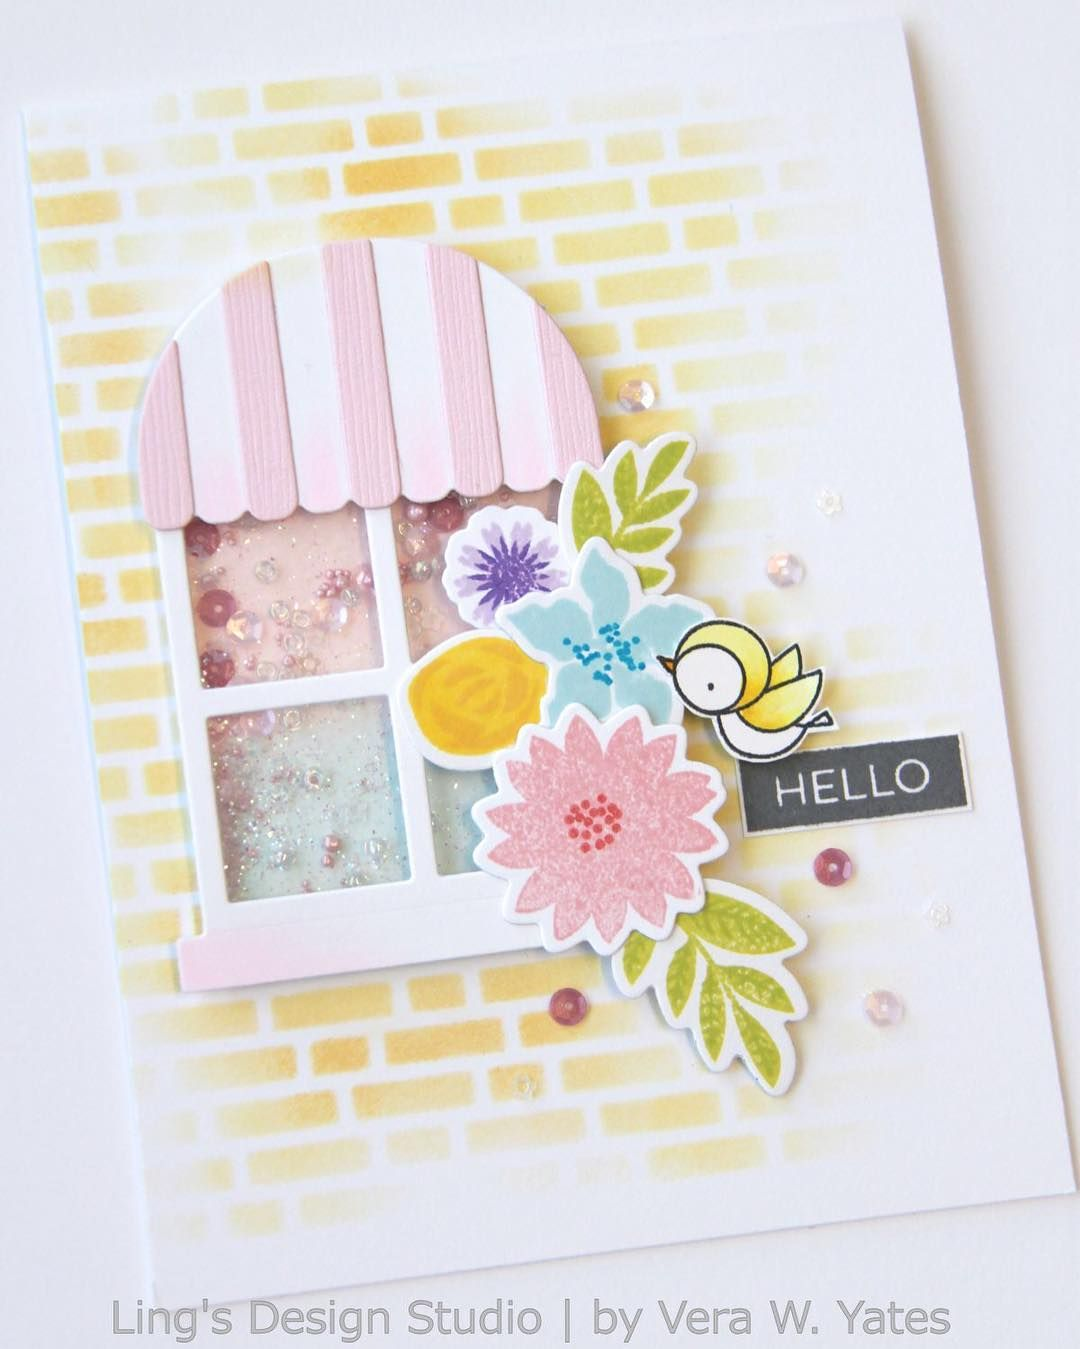 Here's the finished card. I love making shaker card. Using my favorite window dies from @mftstamps. #mftdienamics #thetonstampssequins #cardmaking #papercrafting #thedailymarker30day